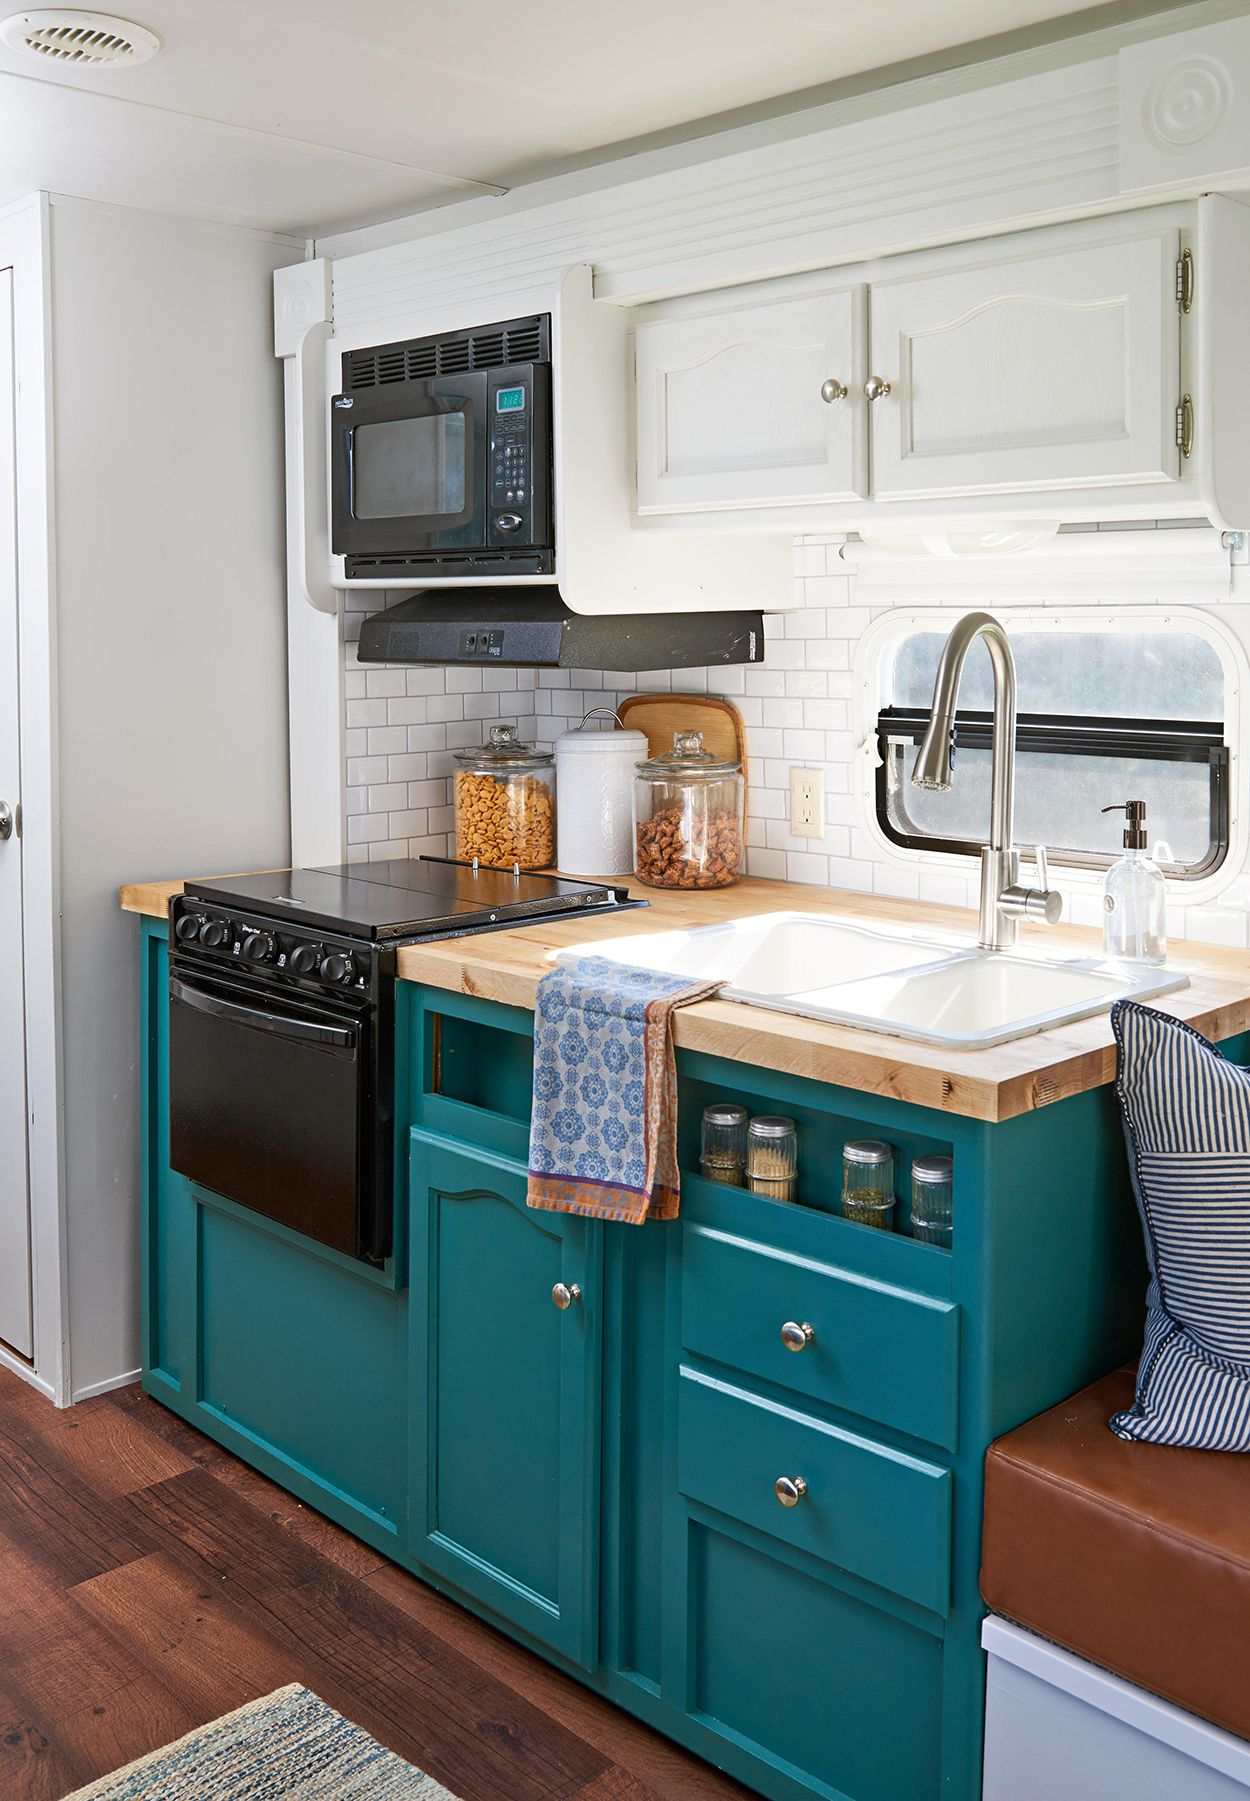 This Family Camper Became An Amazing Tiny Home Kitchen Renovation Kitchen Remodel Home Kitchens